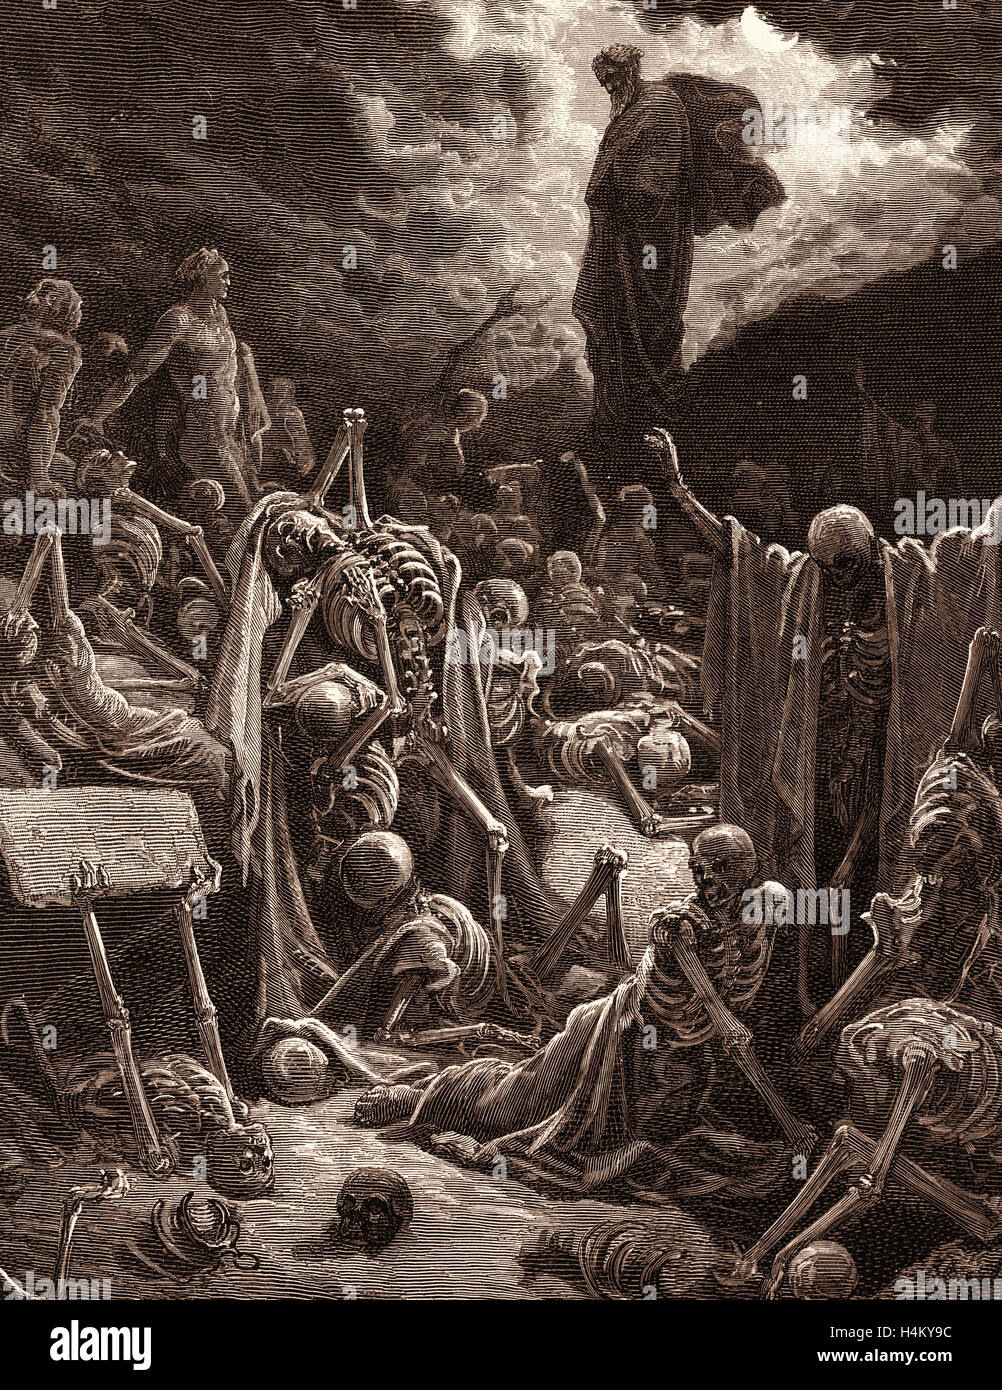 The Vision of the Valley of Dry Bones, Ezekiel by Gustave Doré, 1832 - 1883, French. 1870, Art, Artist, Romanticism, - Stock Image